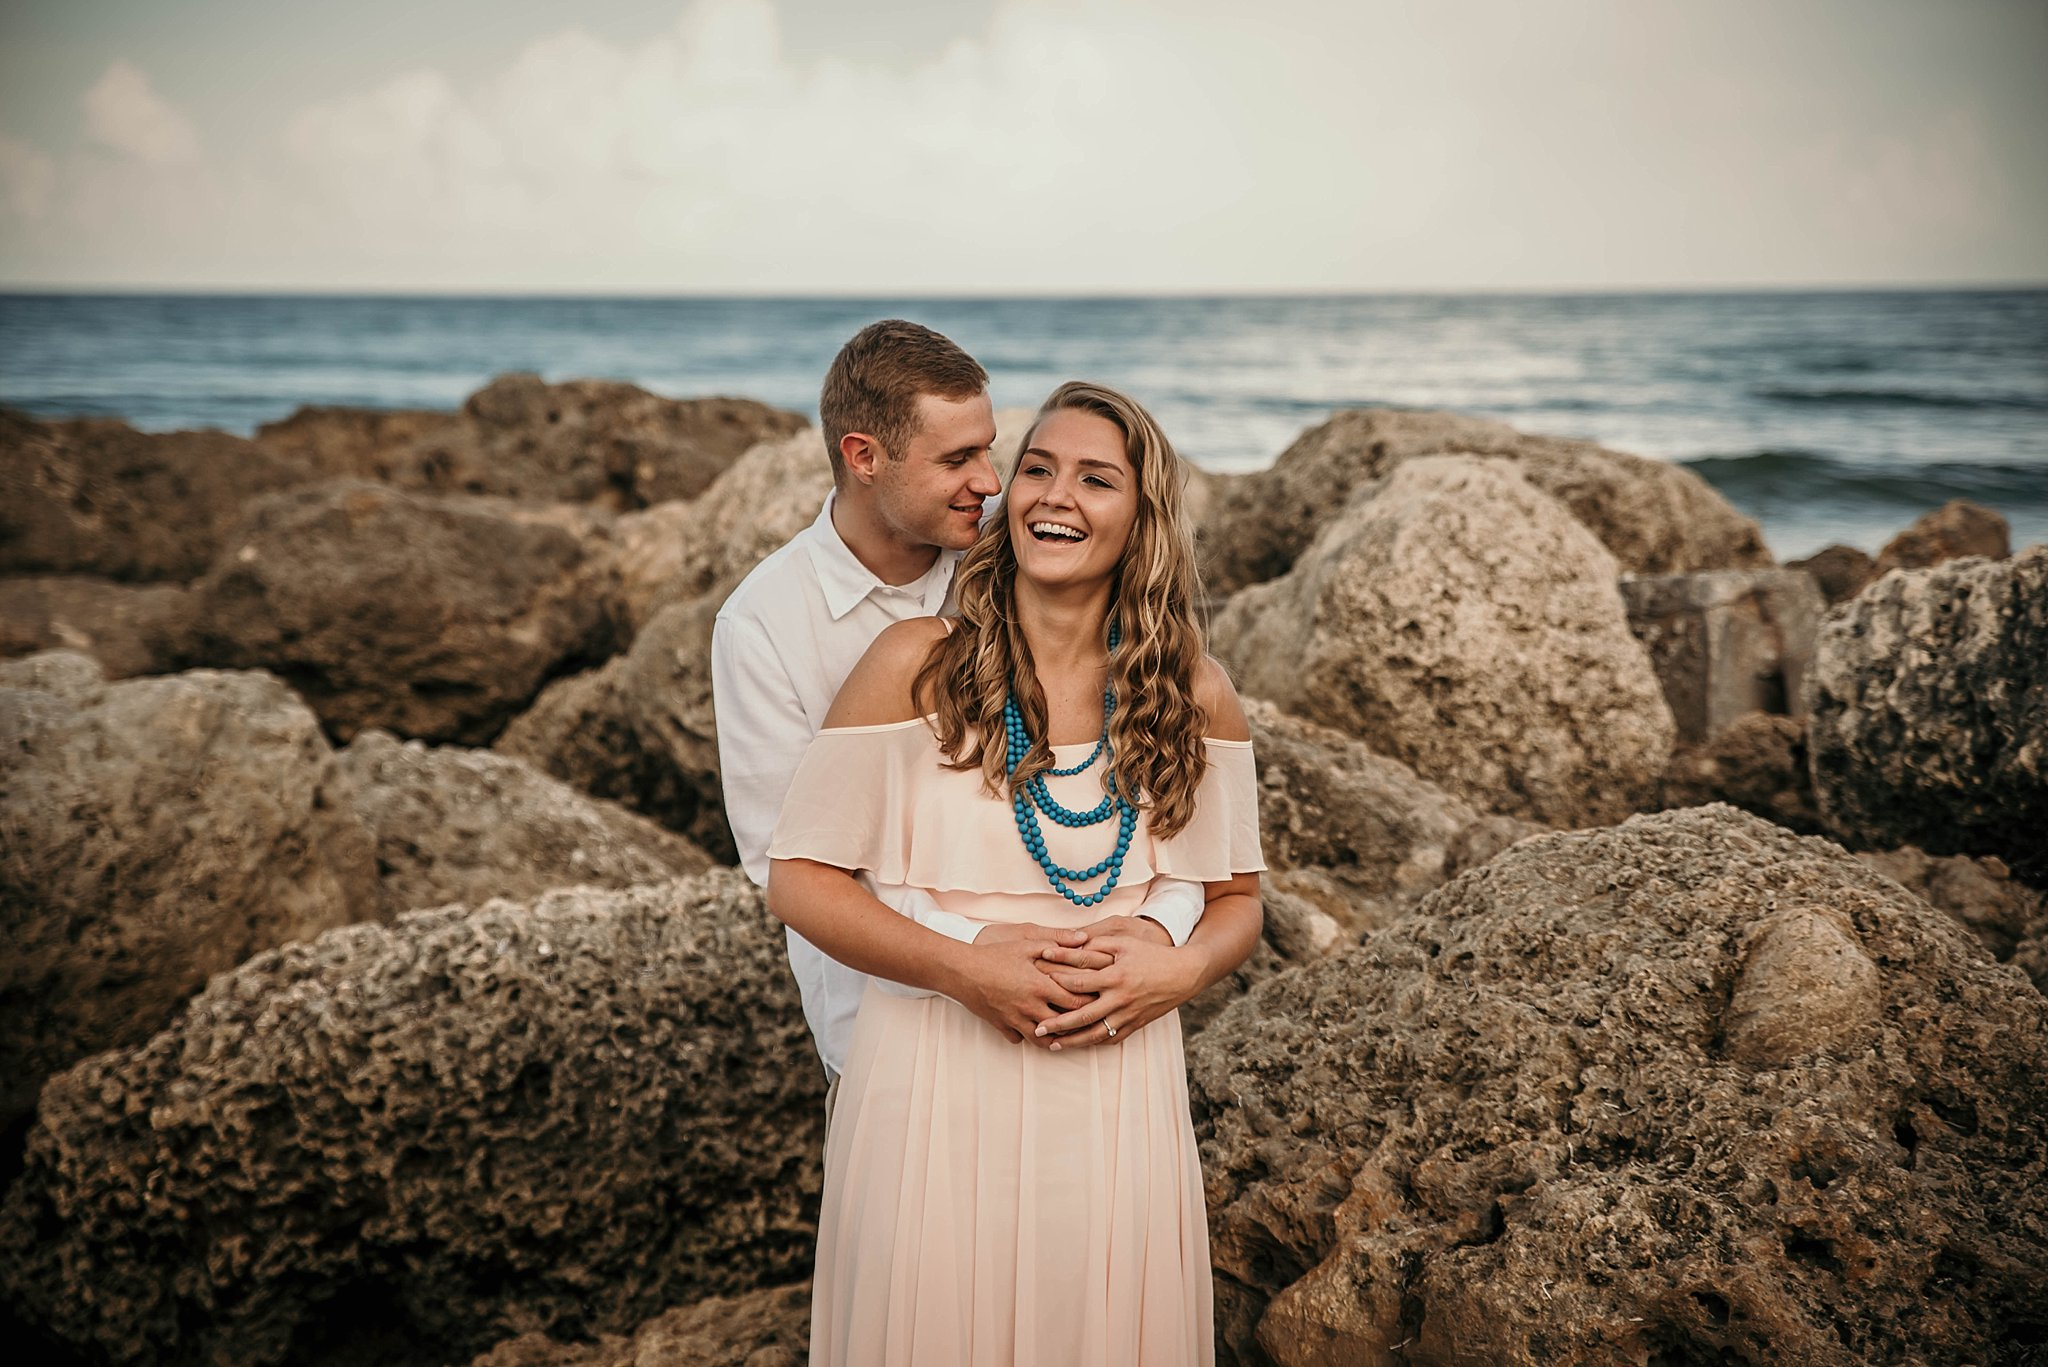 palm-beach-engagement-photos-florida-wedding-photographer_0011.jpg